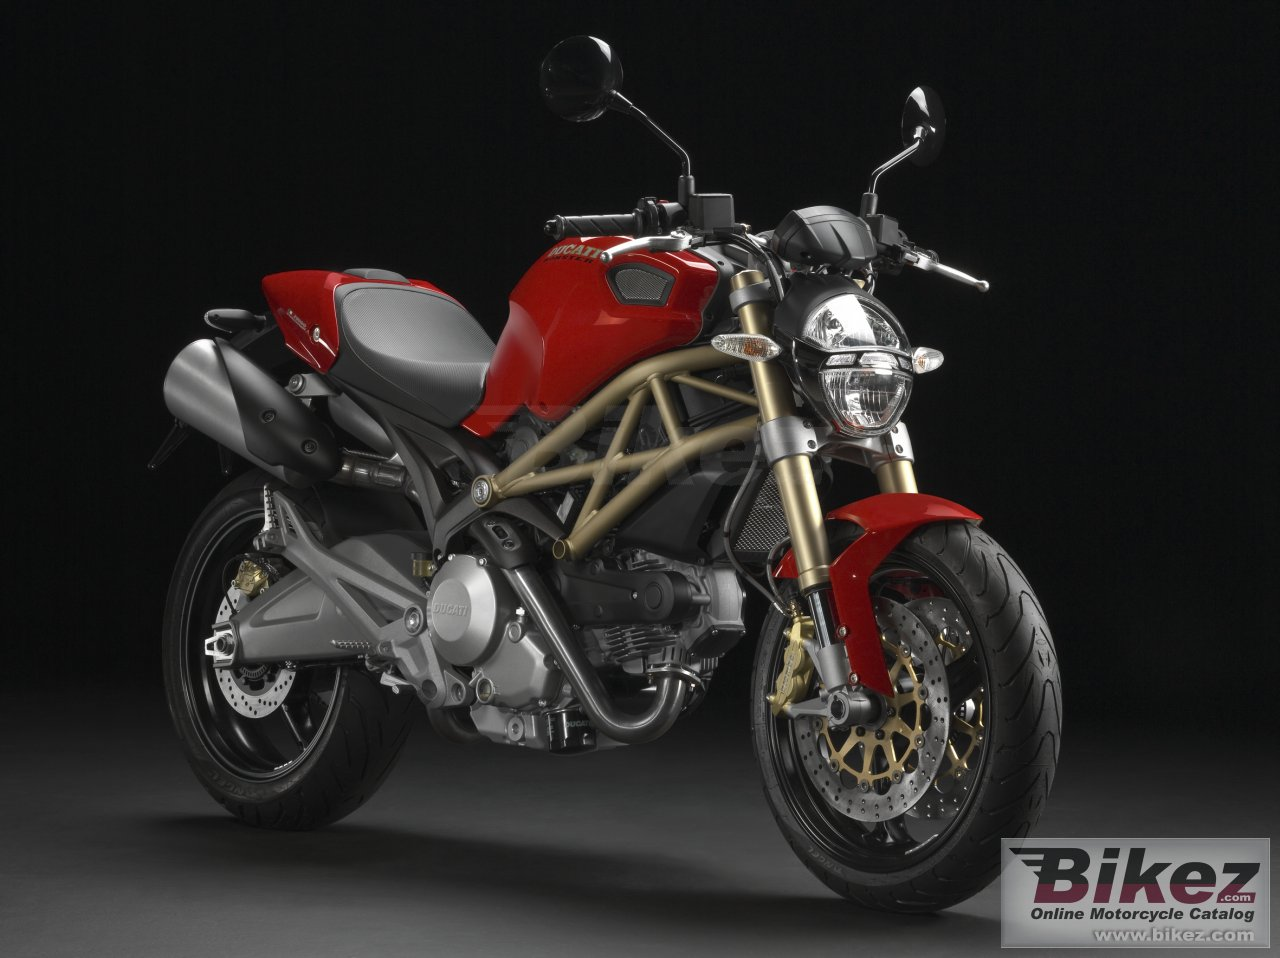 Big Ducati monster 696 20th anniversary picture and wallpaper from Bikez.com